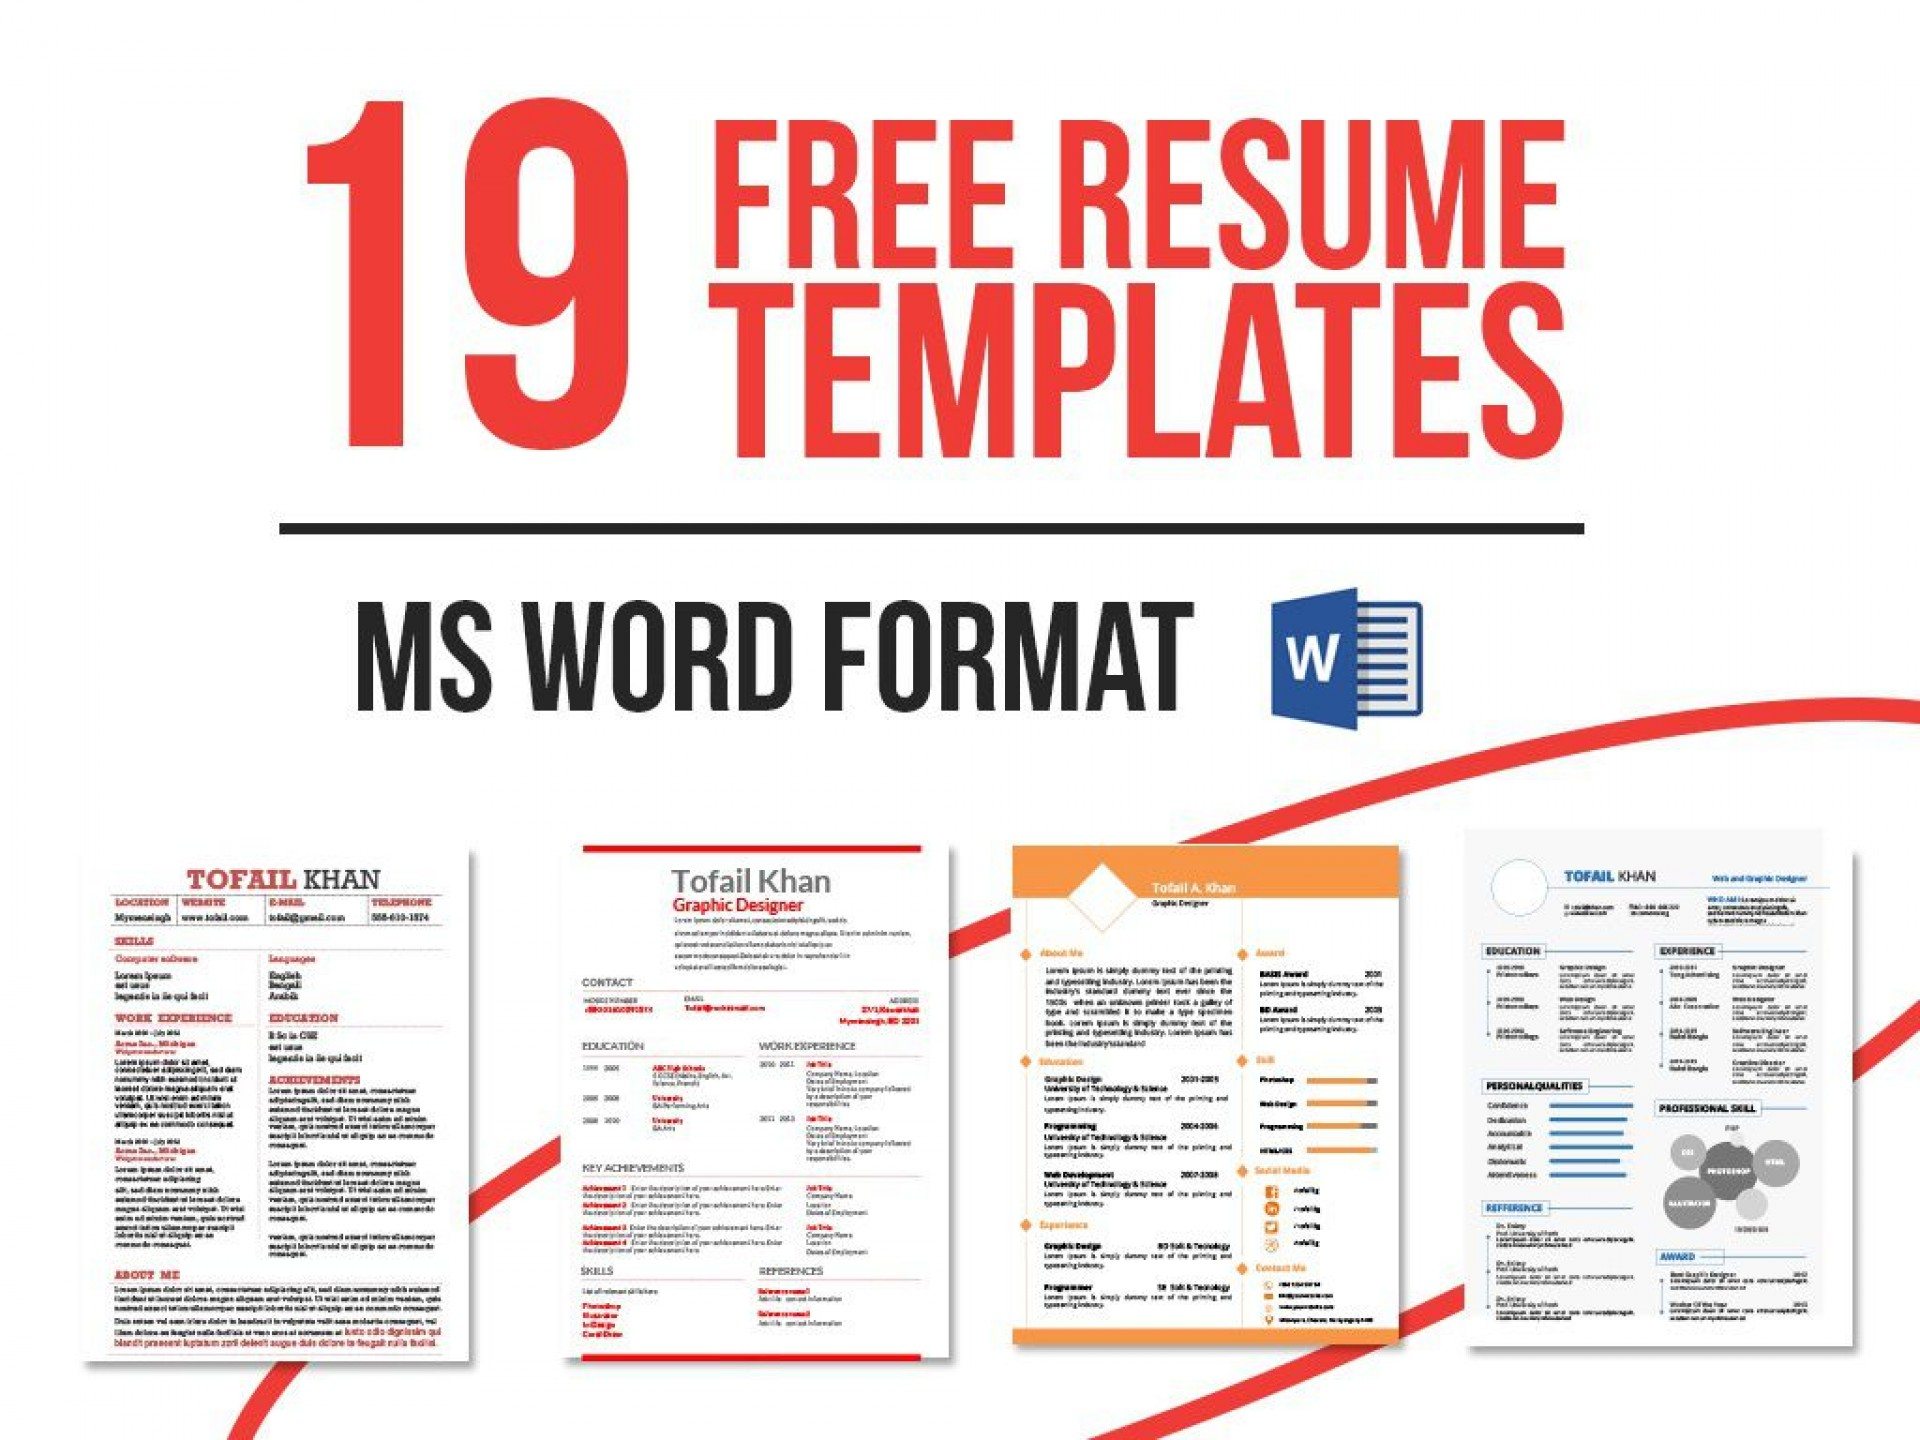 003 Remarkable M Word Template Free Download Highest Quality  Microsoft Office Invoice Letterhead 2003 Resume1920